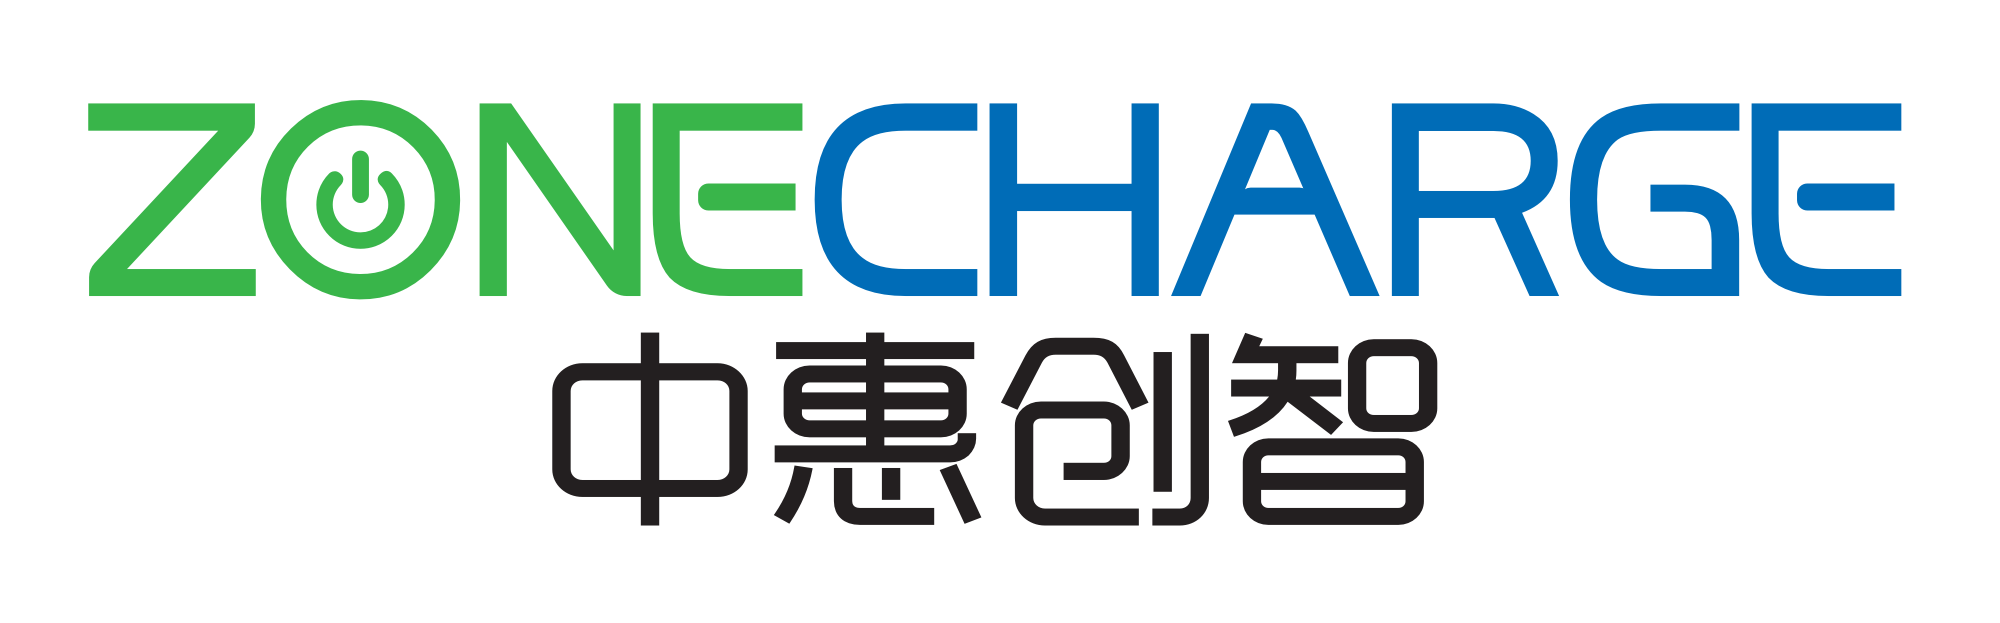 Wireless Charging,Zonecharge (Shenzhen) Wireless Supply Co., Ltd.